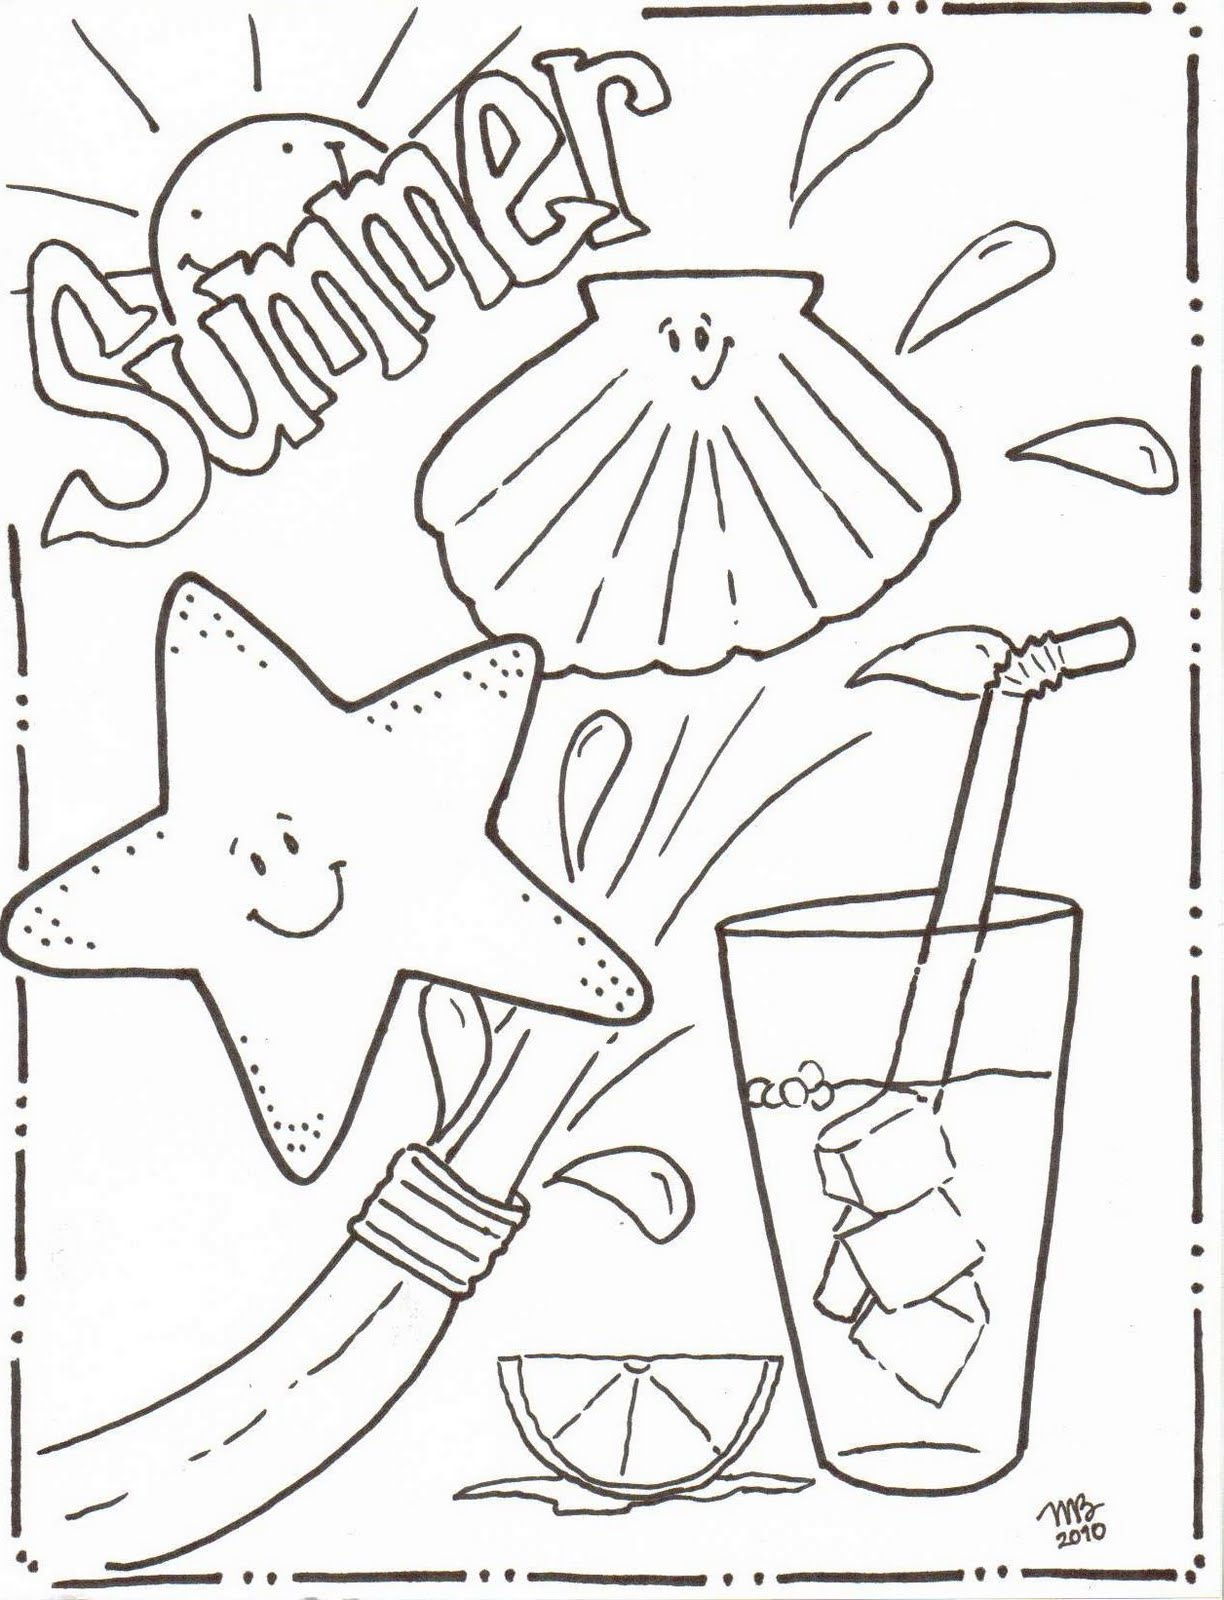 Michelle Kemper Brownlow: Summer Coloring Pages - Original ...